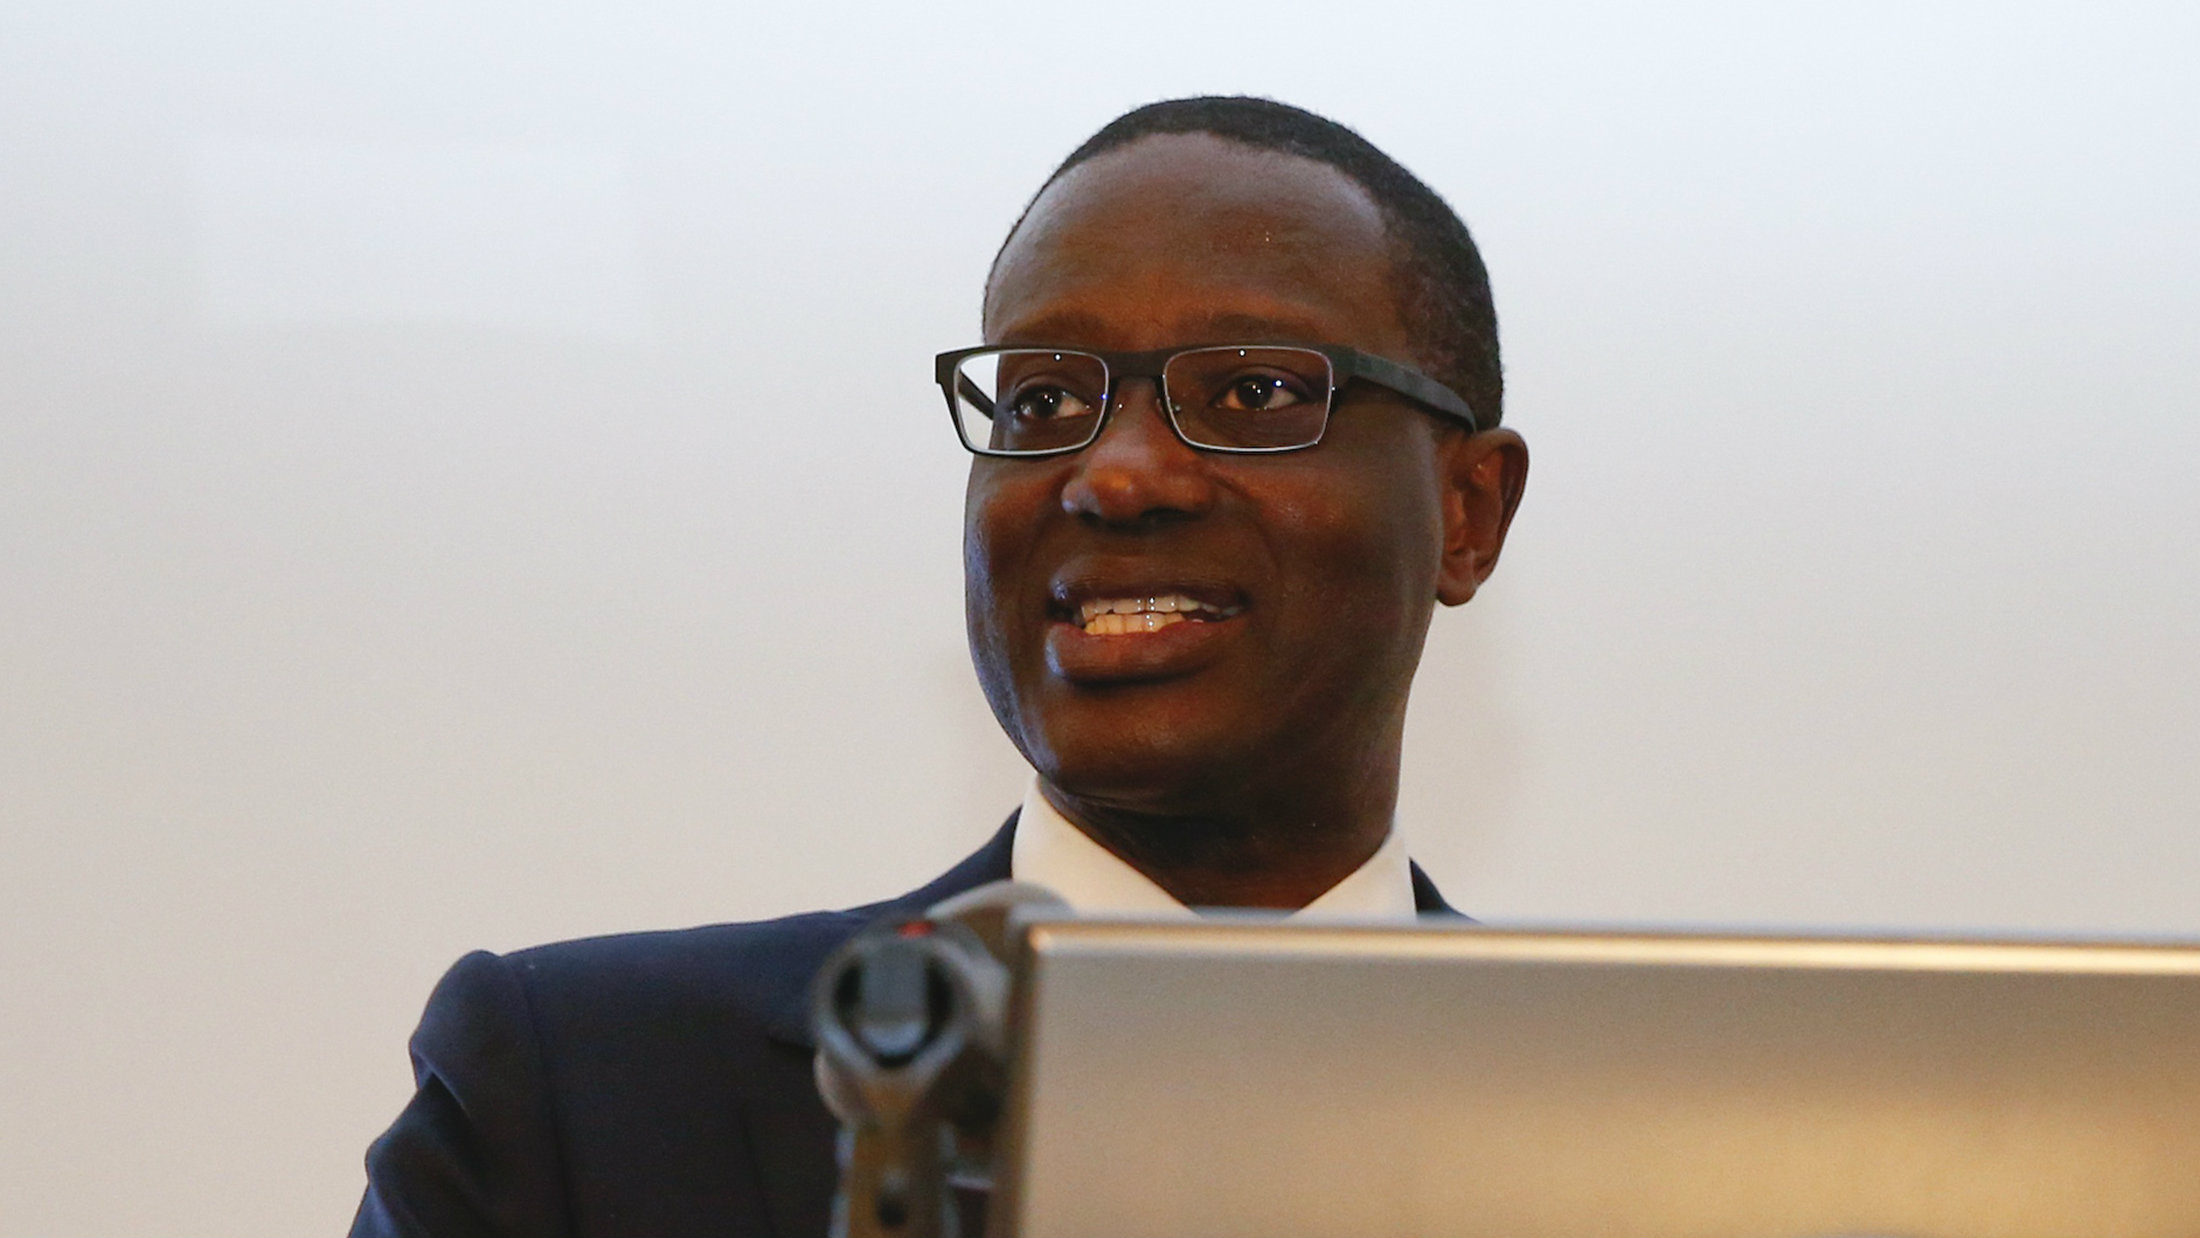 Tidjane Thiam speaks during a Credit Suisse news conference in Zurich, March 10, 2015.